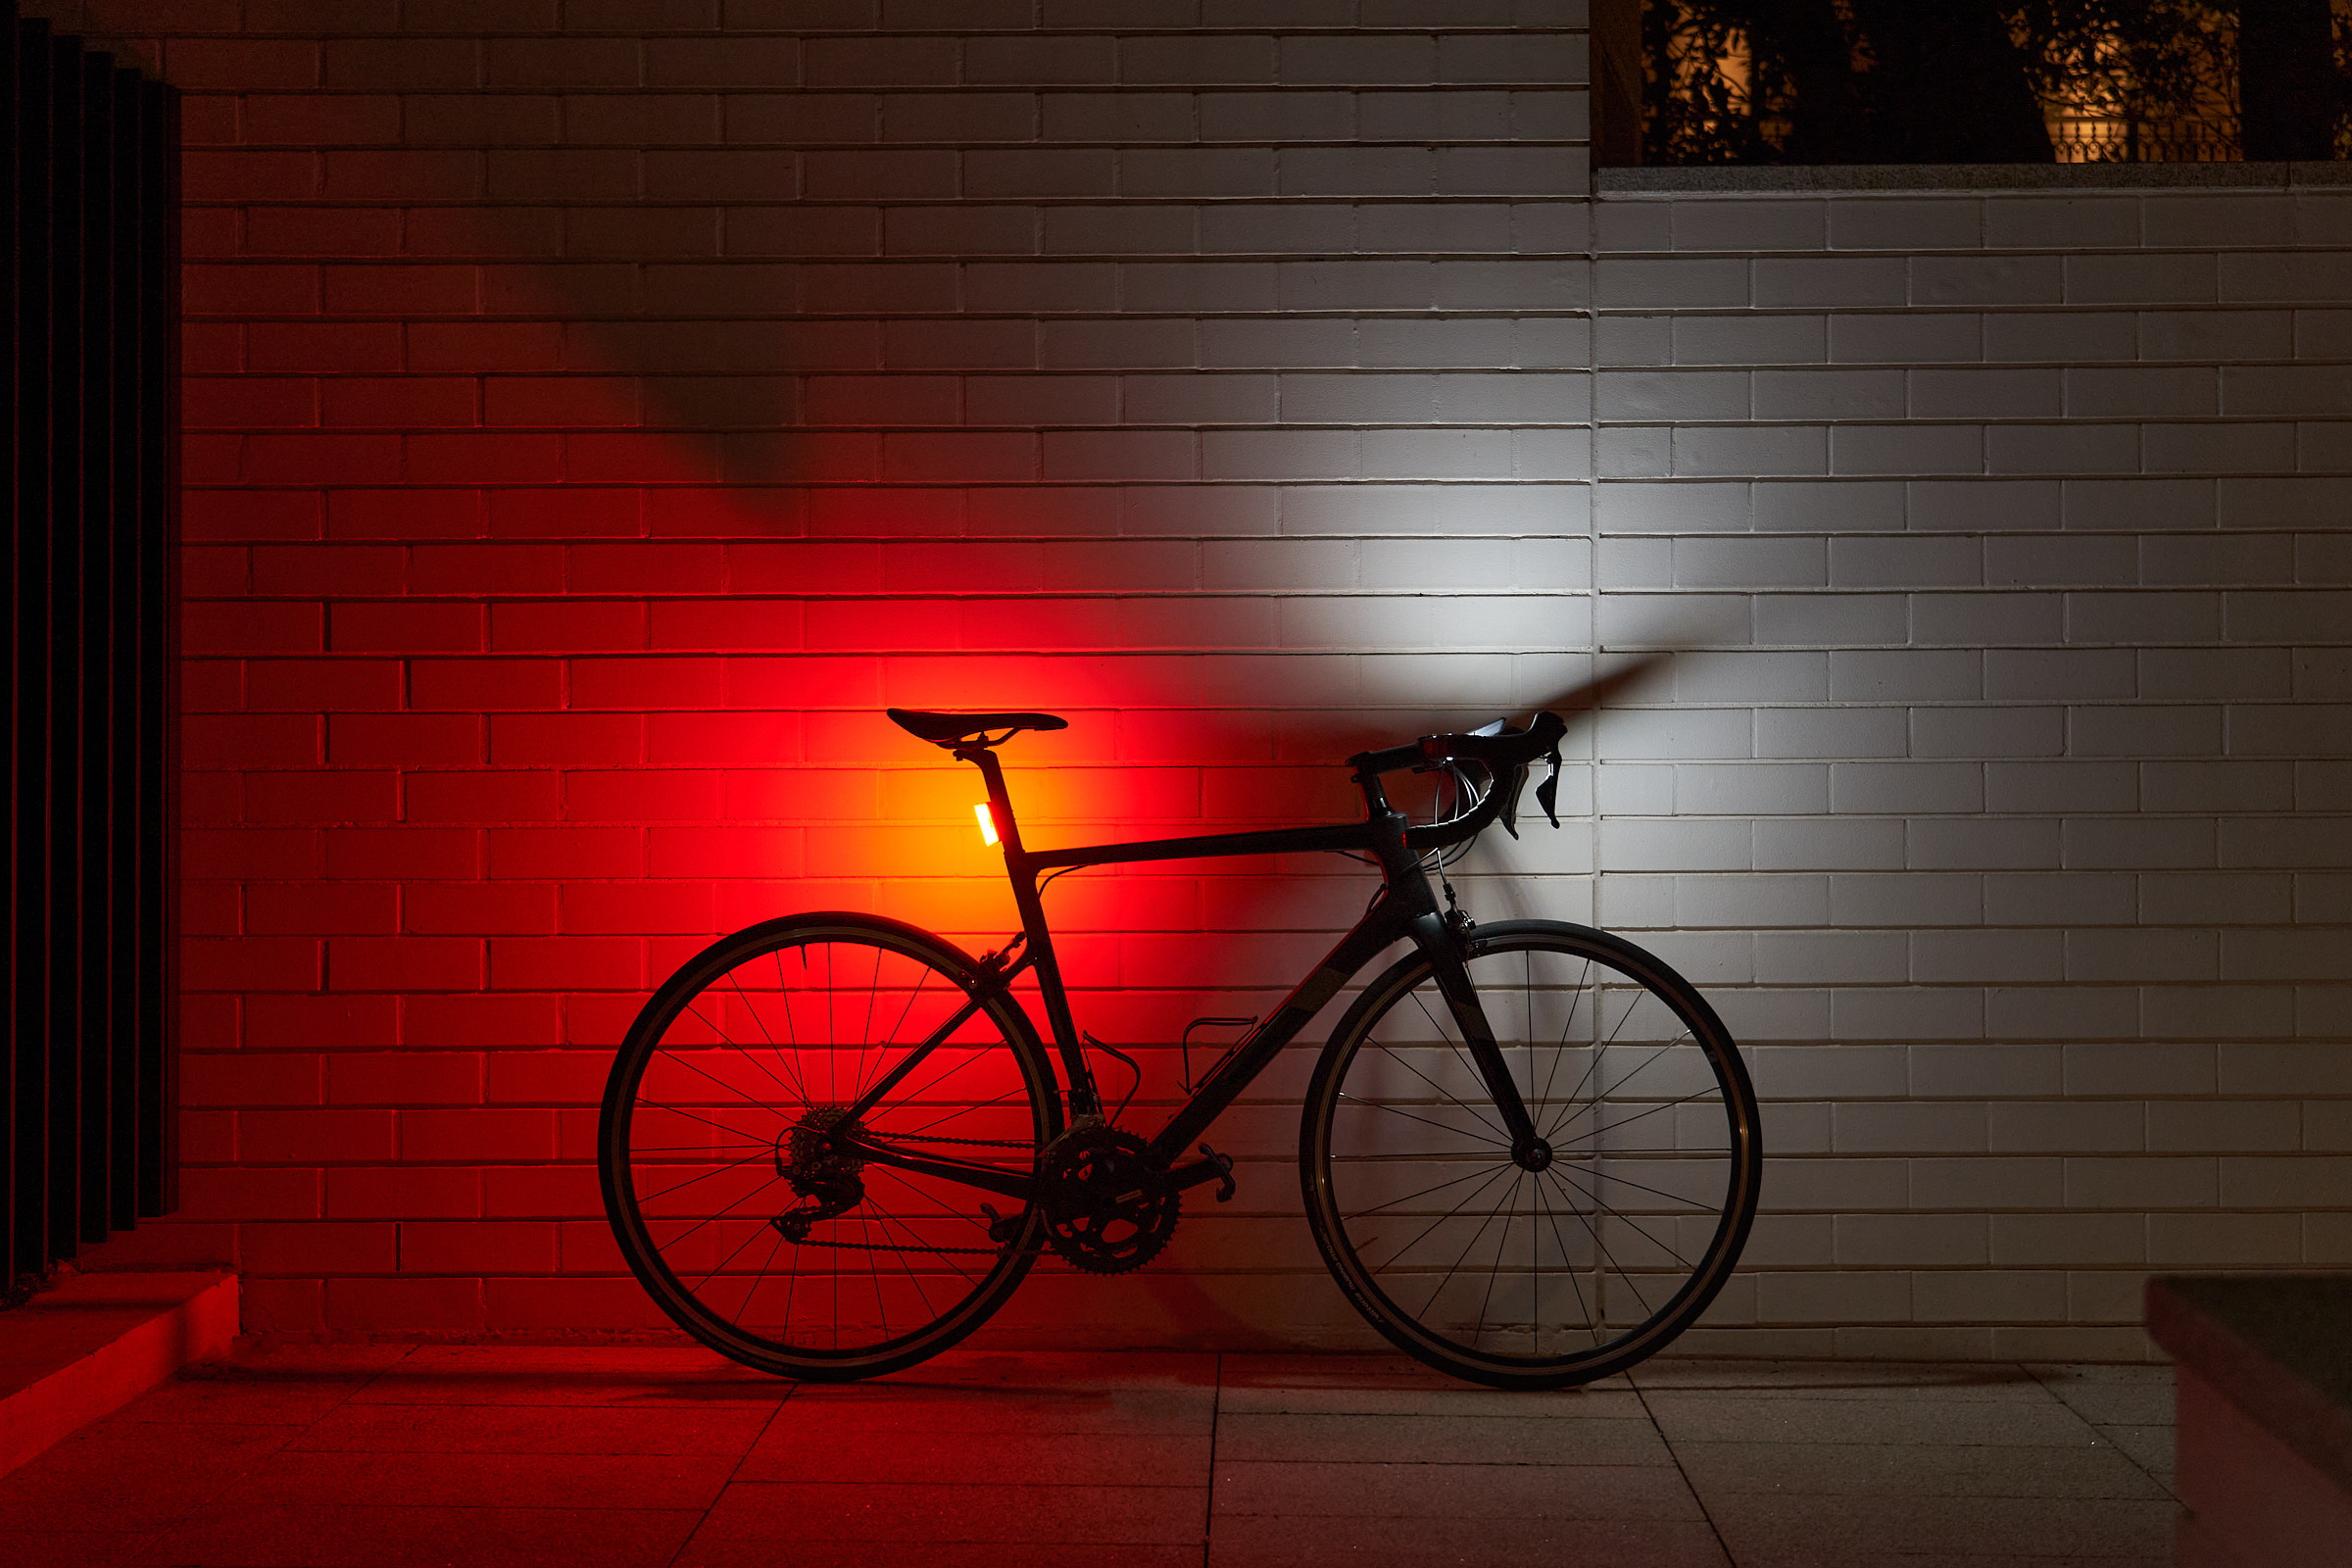 Well-Designed, Minimalist Cycling Kit & Accessories - Knog Cobber Bike Lights